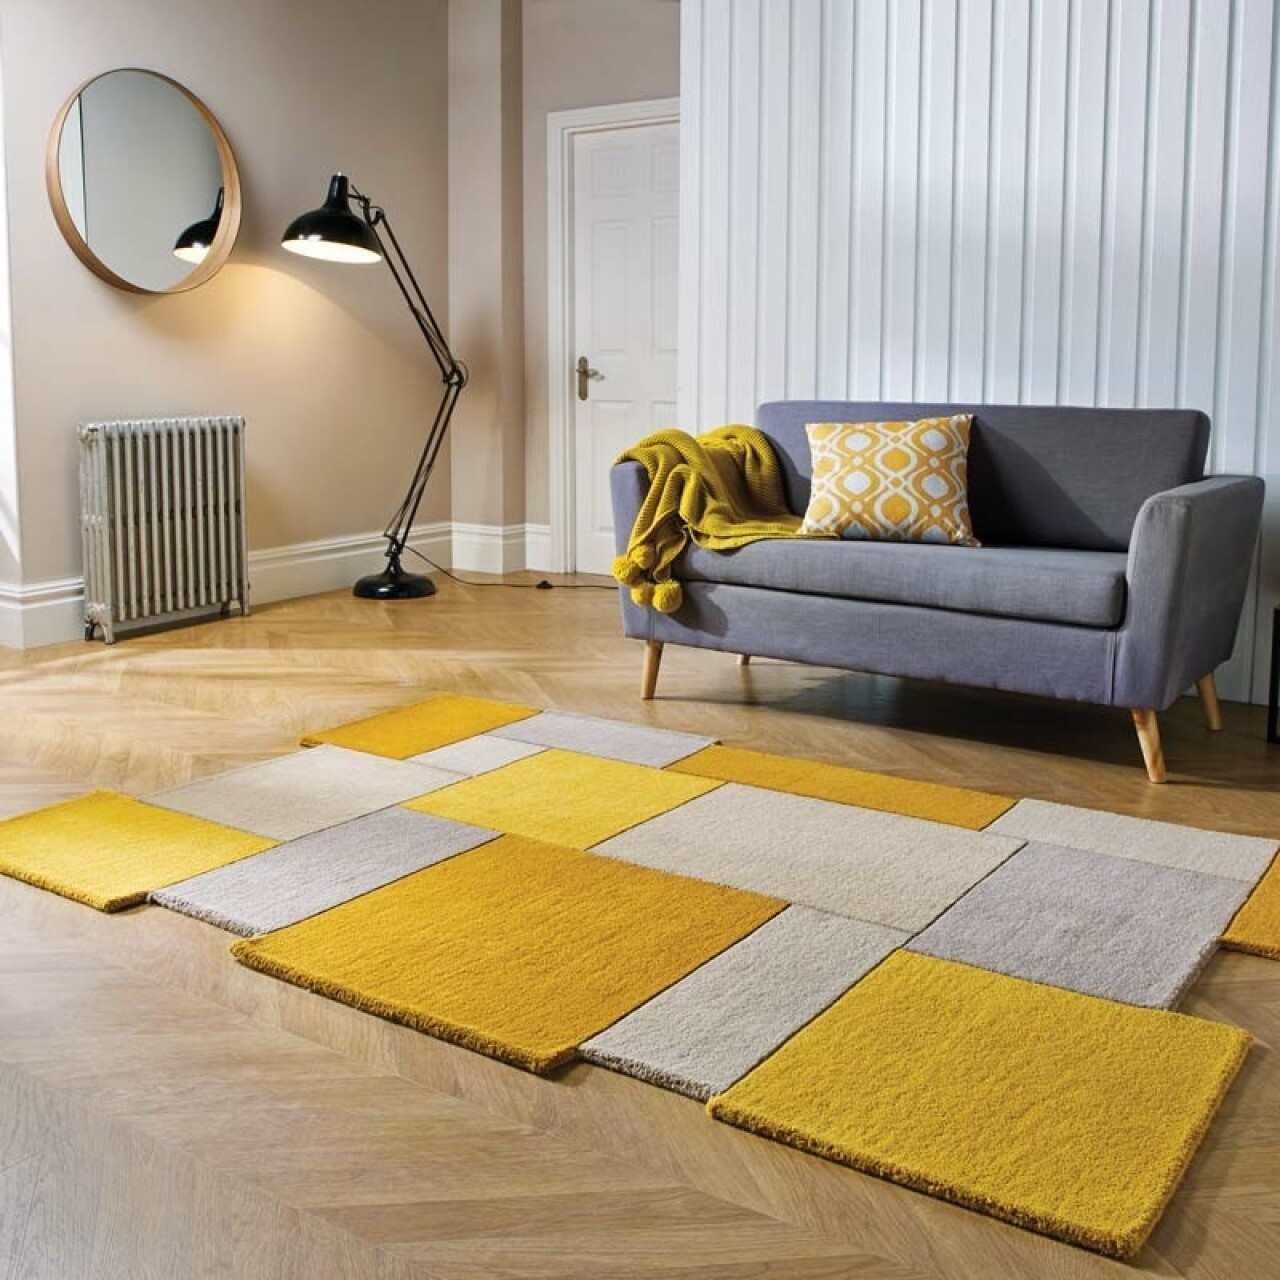 Covor Abstract Collage Ochre, Flair Rugs, 120x180 cm, lana, ocru